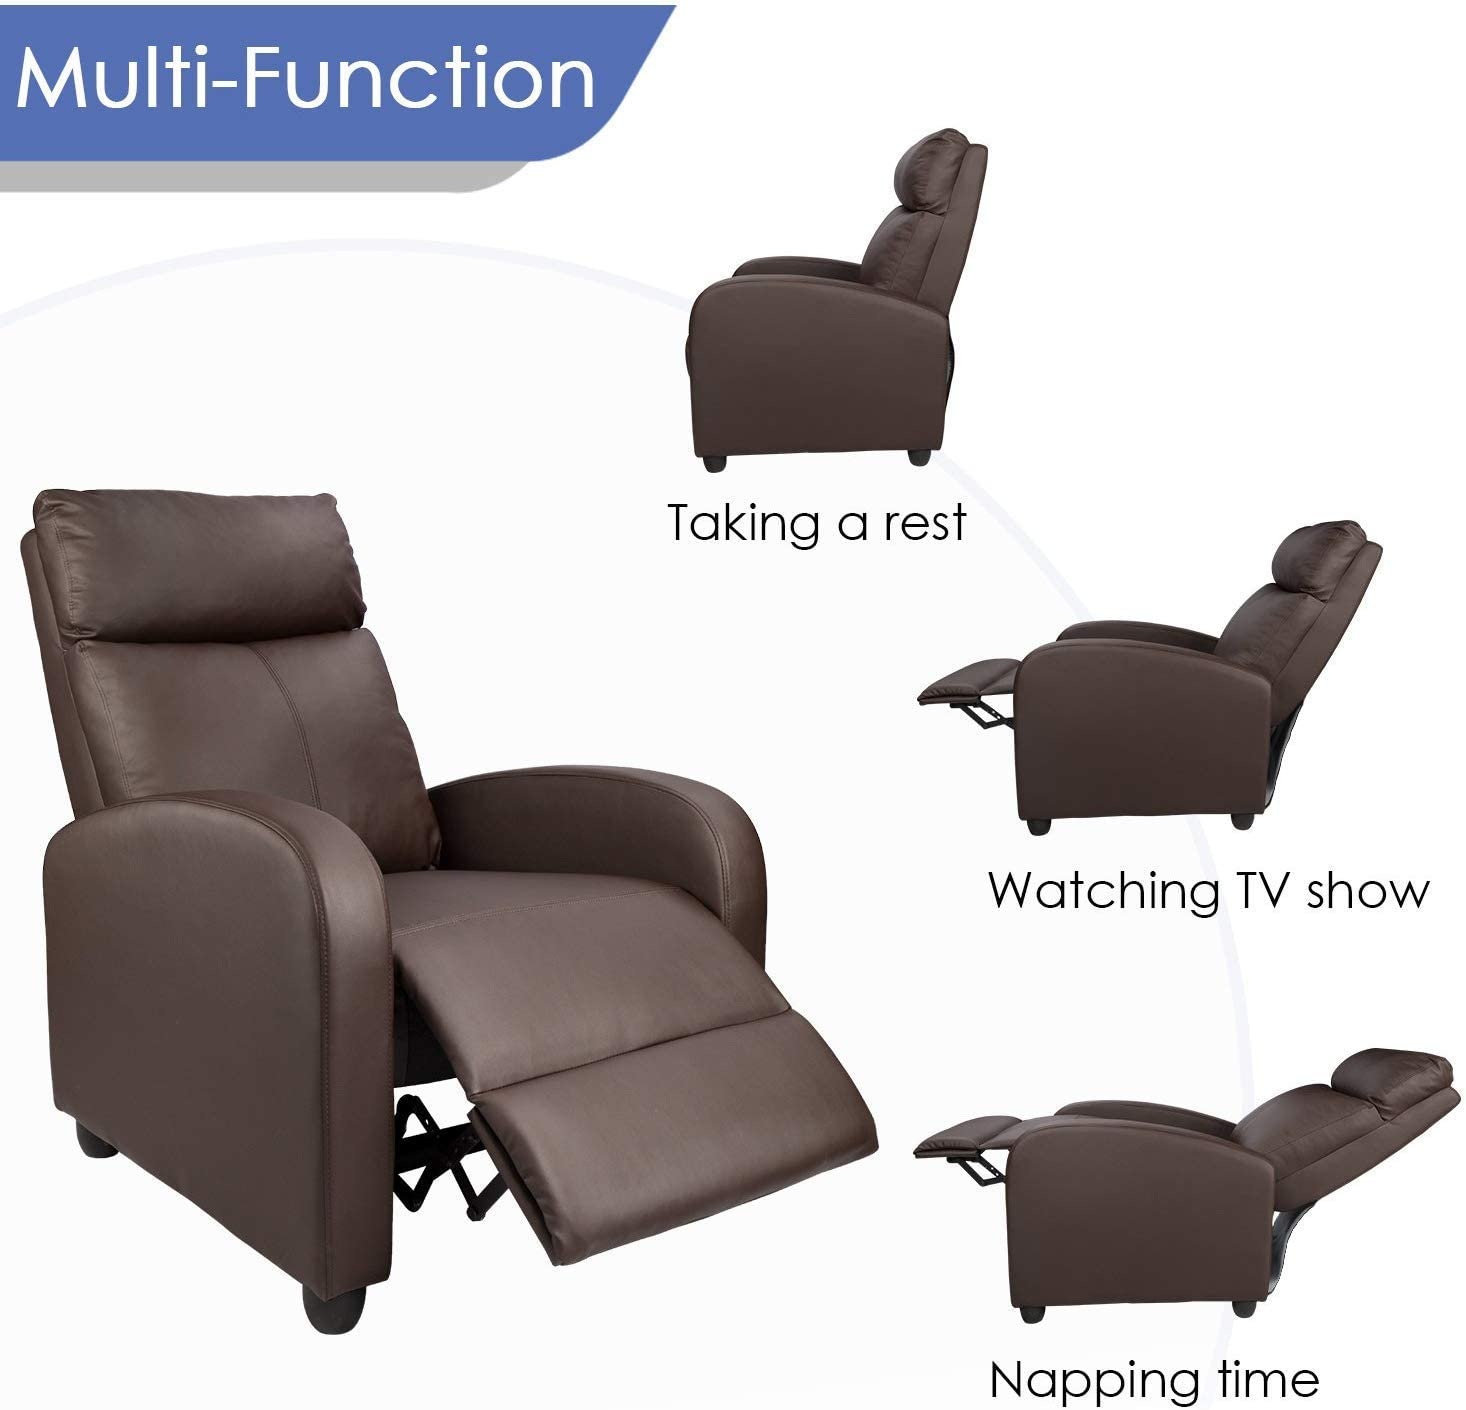 61Aewl7wTuL. AC SL1466 - What Are The Most Comfortable Chairs For Watching TV That Look Good Too - ChairPicks